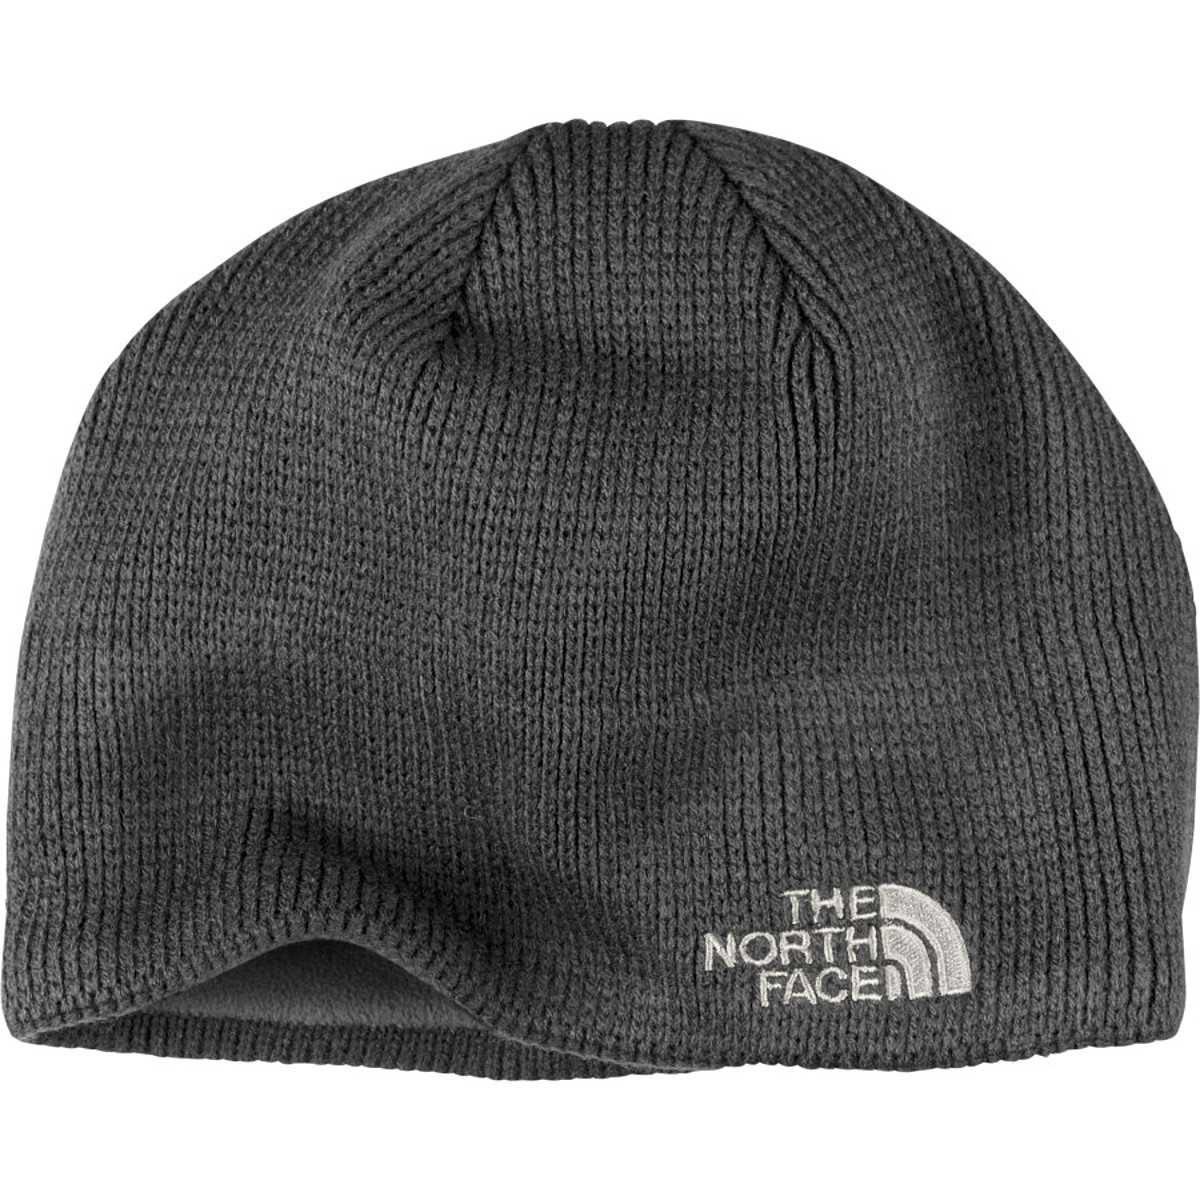 7841f1cff The 8 Best Men's Beanies of 2019